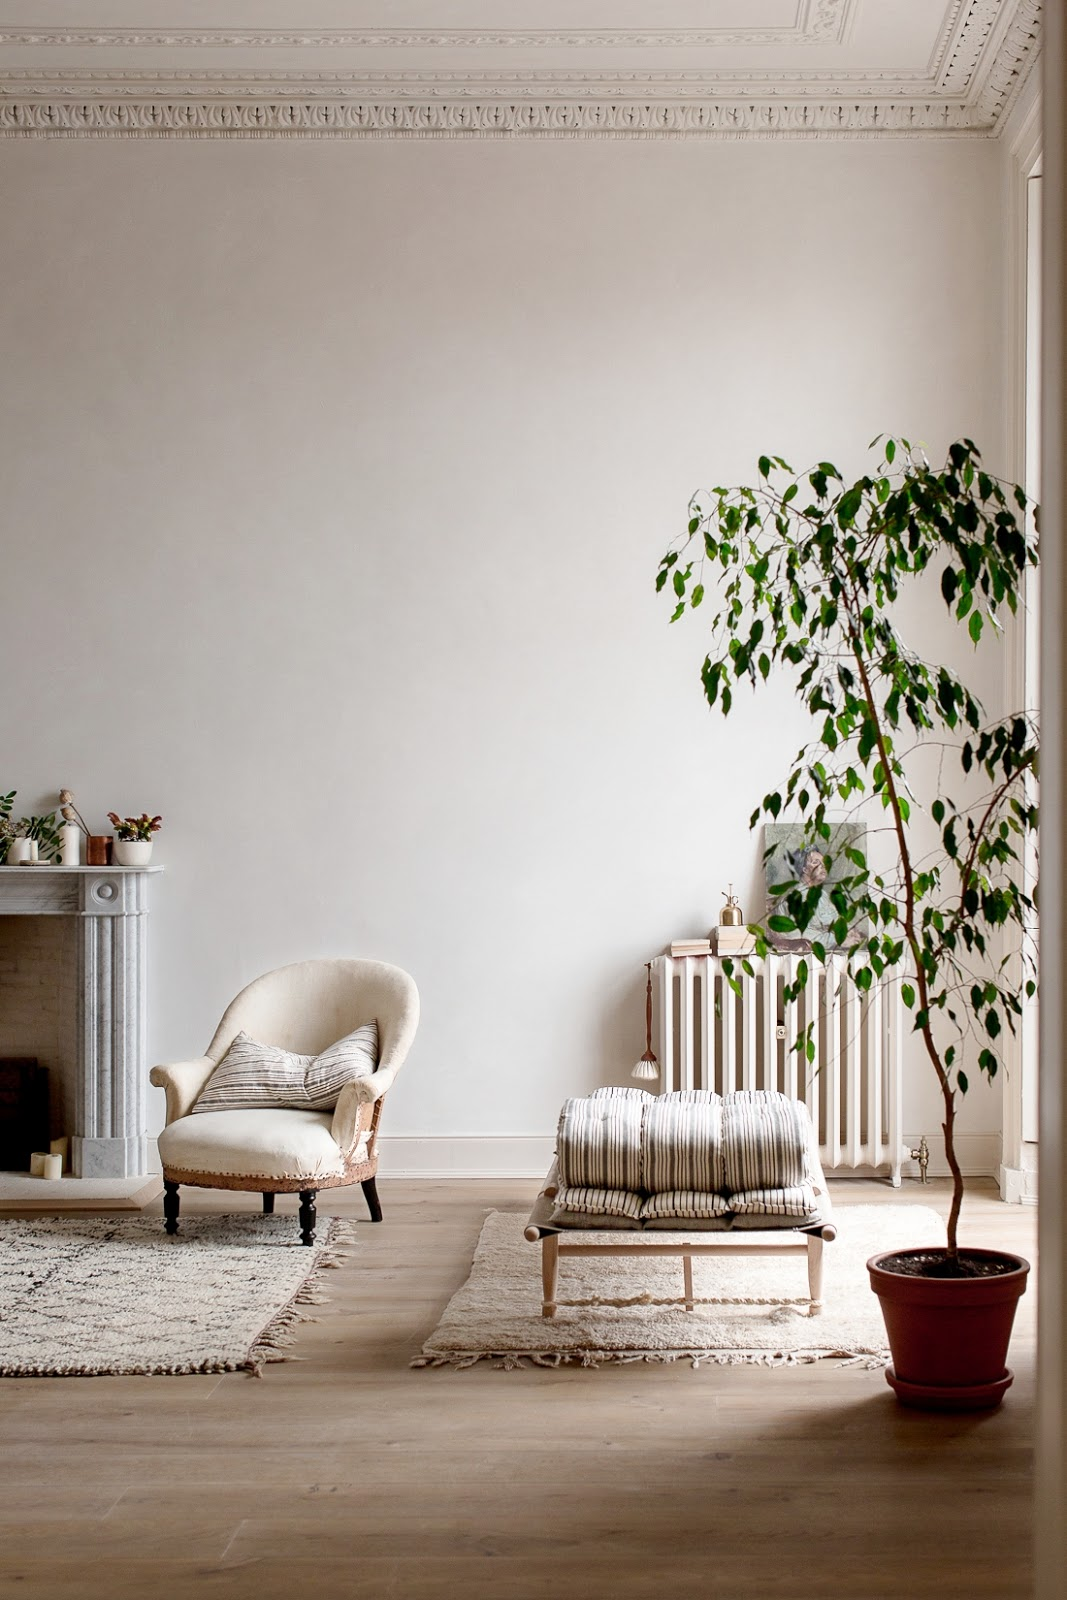 ilaria fatone - a comforting and minimal home - the living-room by the fireplace